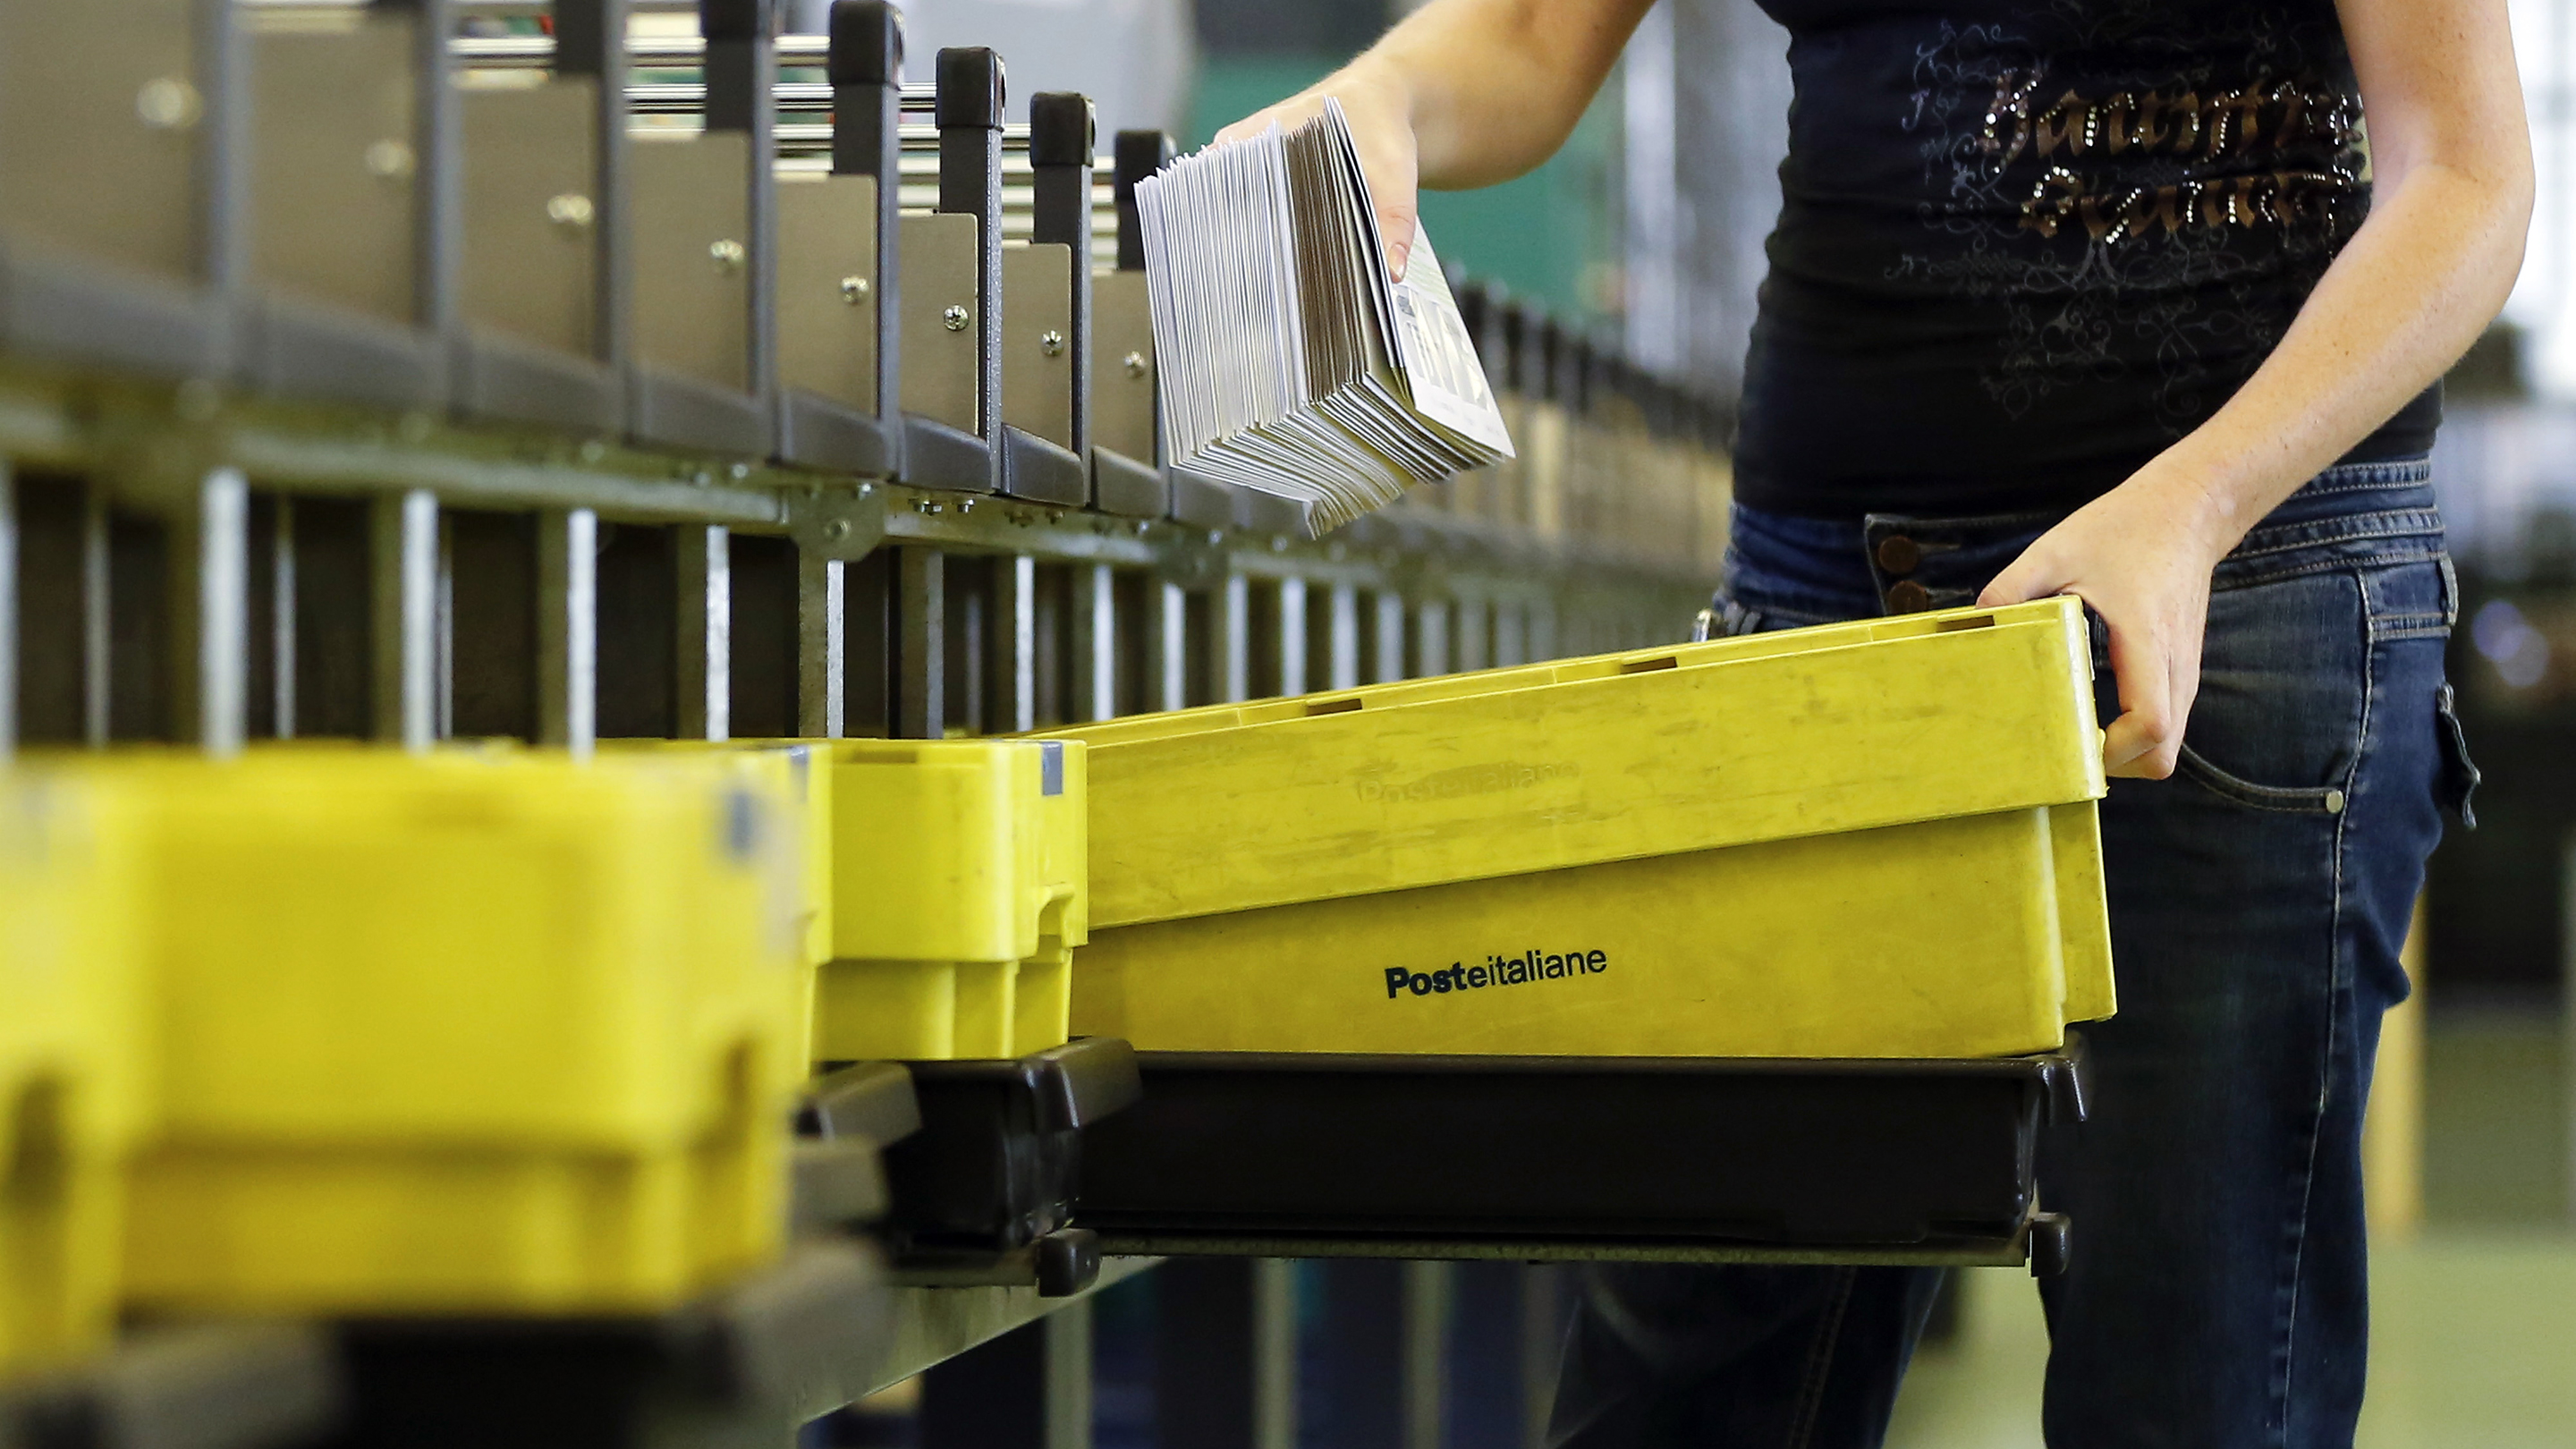 Postal Operations At Poste Italiane SpA As Government Plans To Sell 40% Of State Postal System To Cut Public Debt